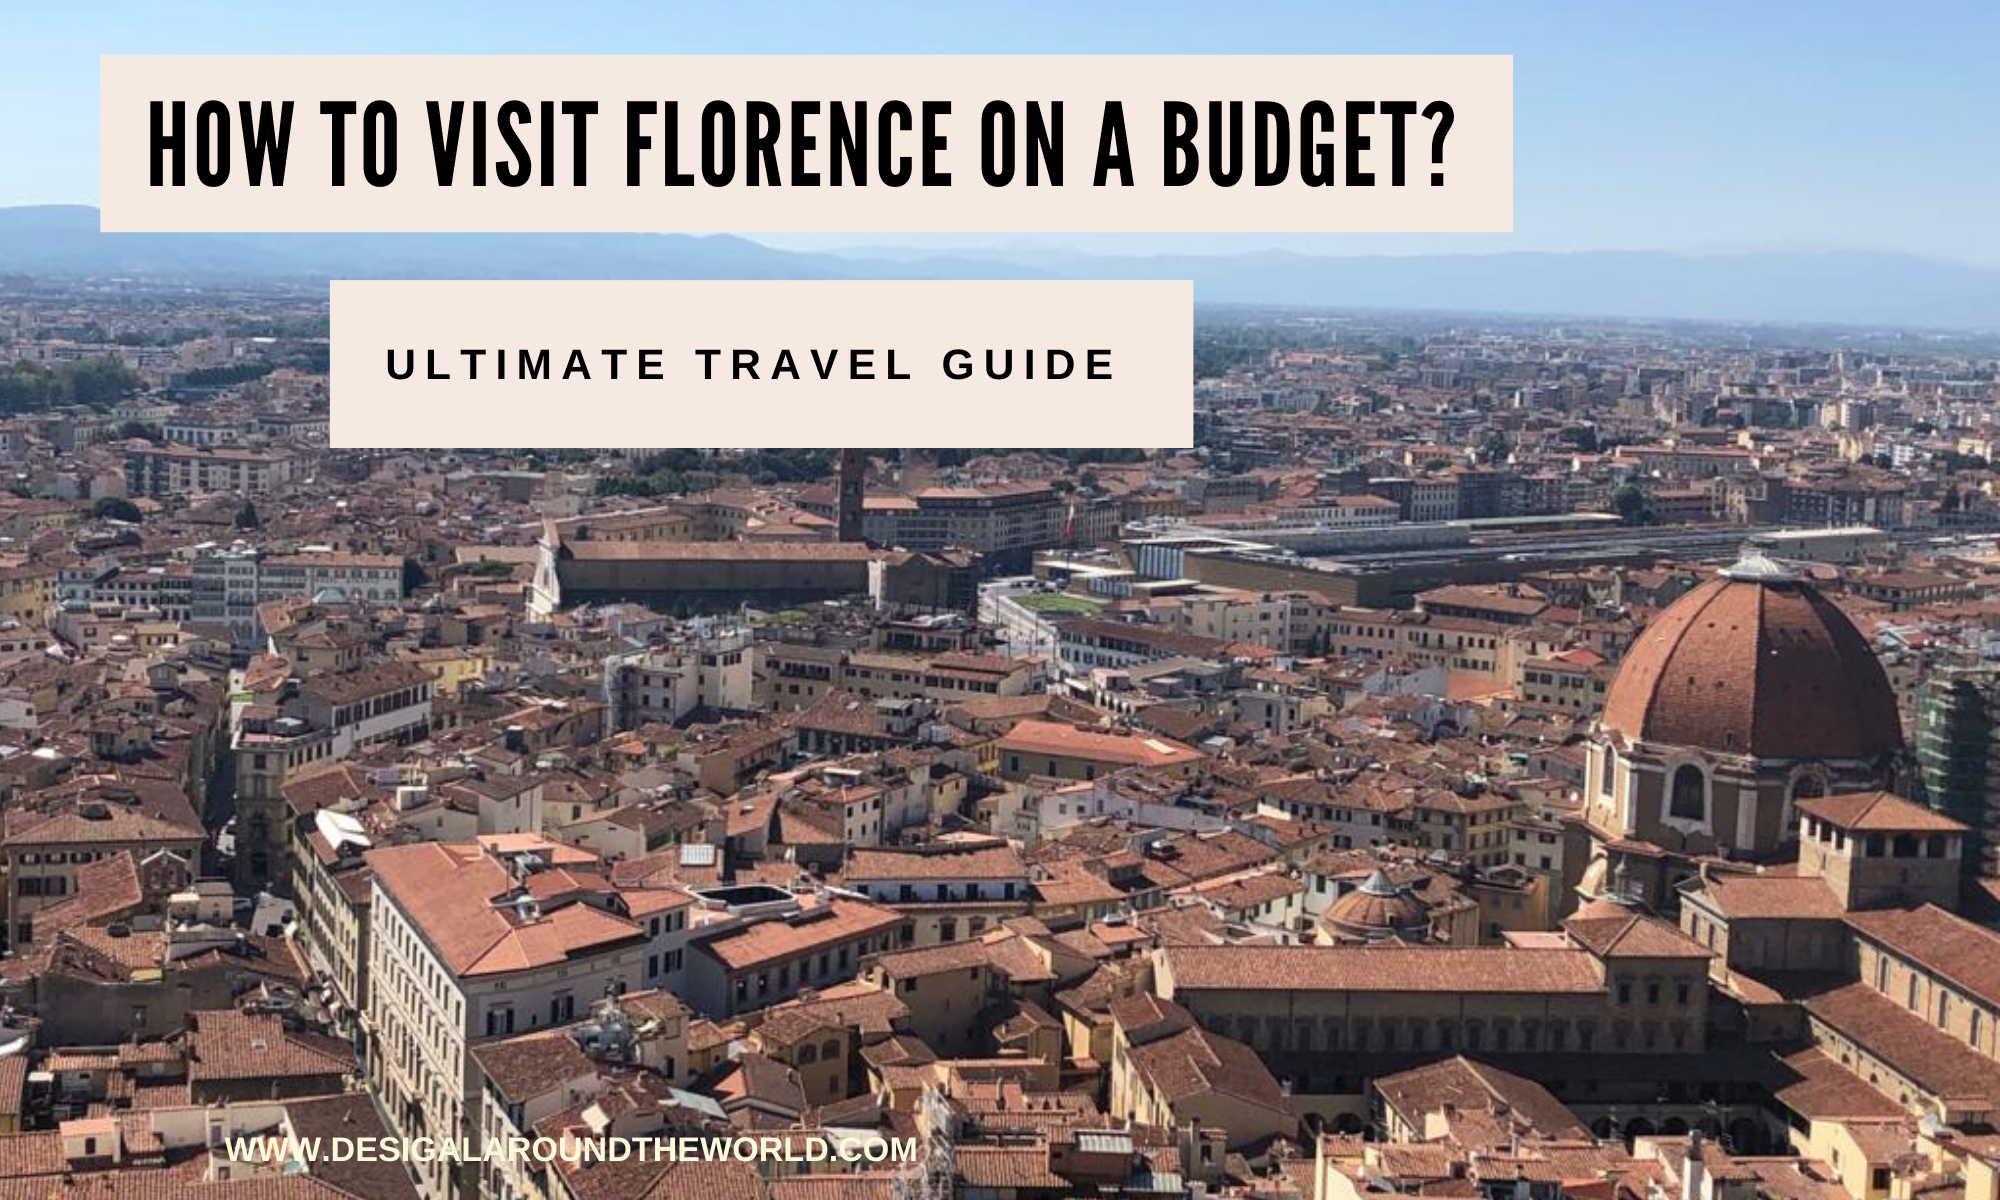 Visit florence on a budget? Travel guide